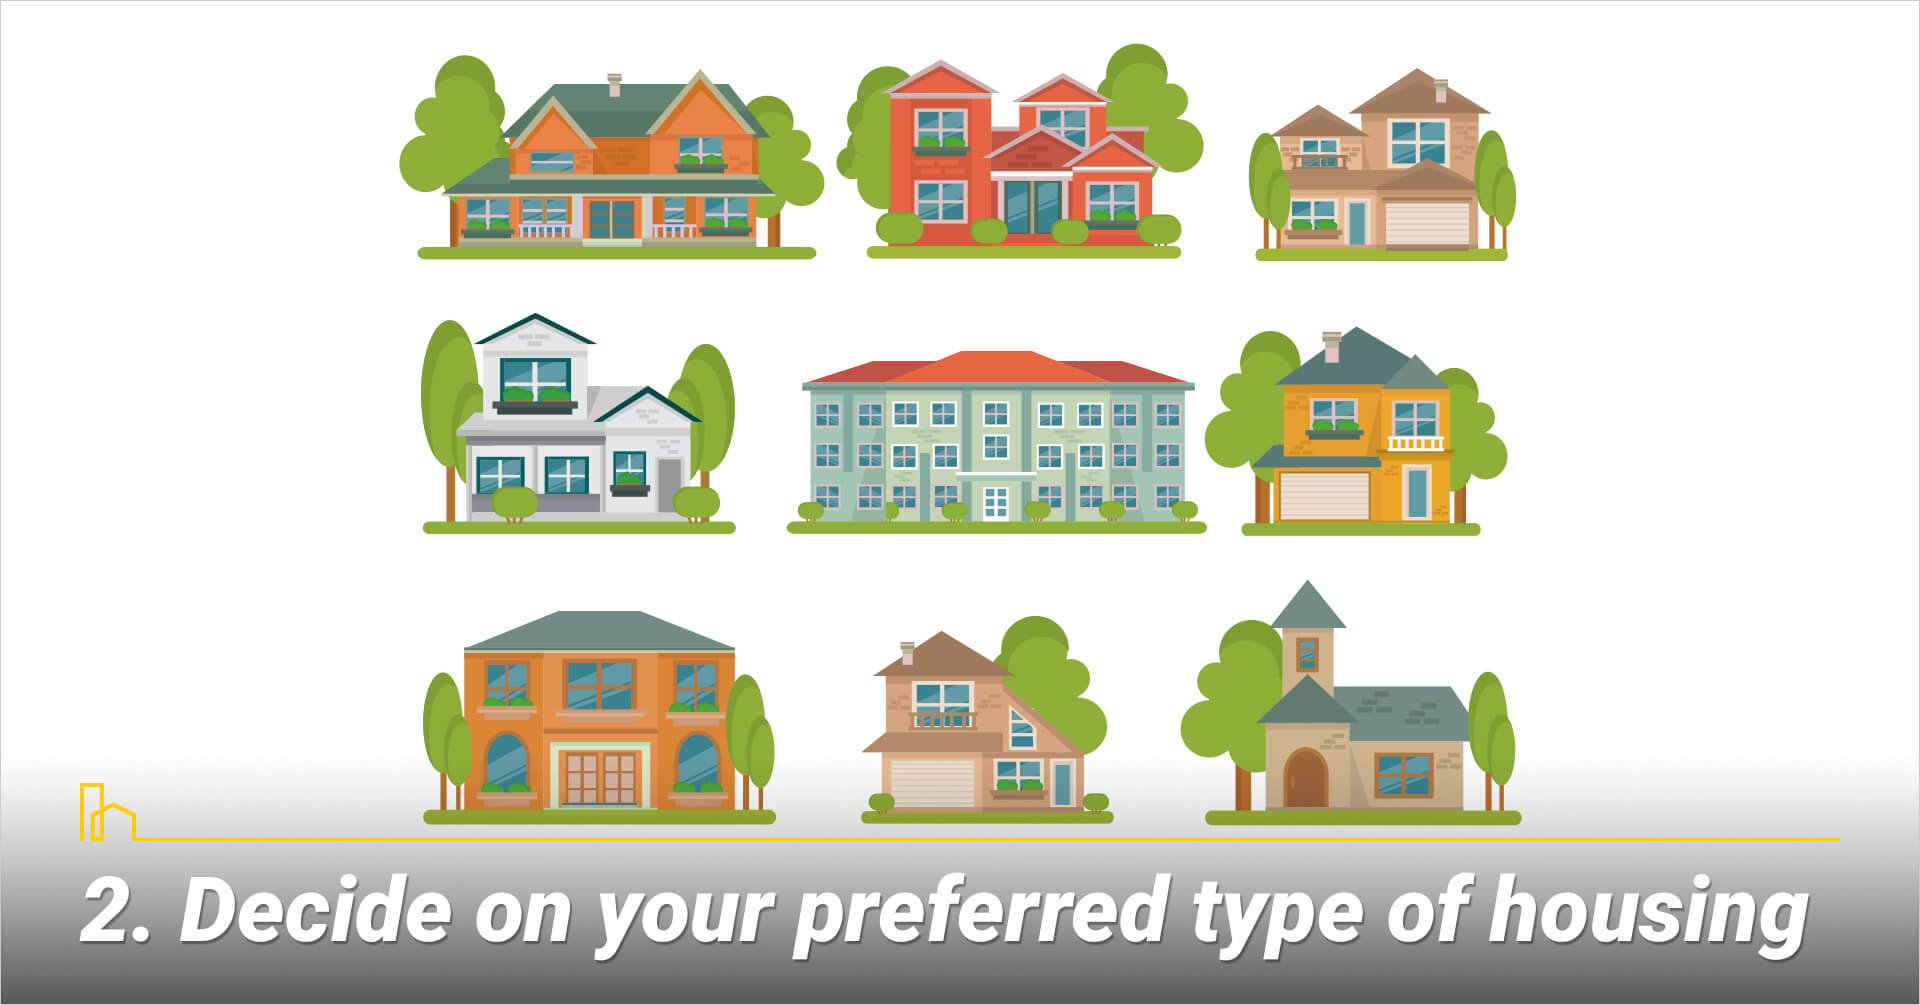 Decide on your preferred type of housing